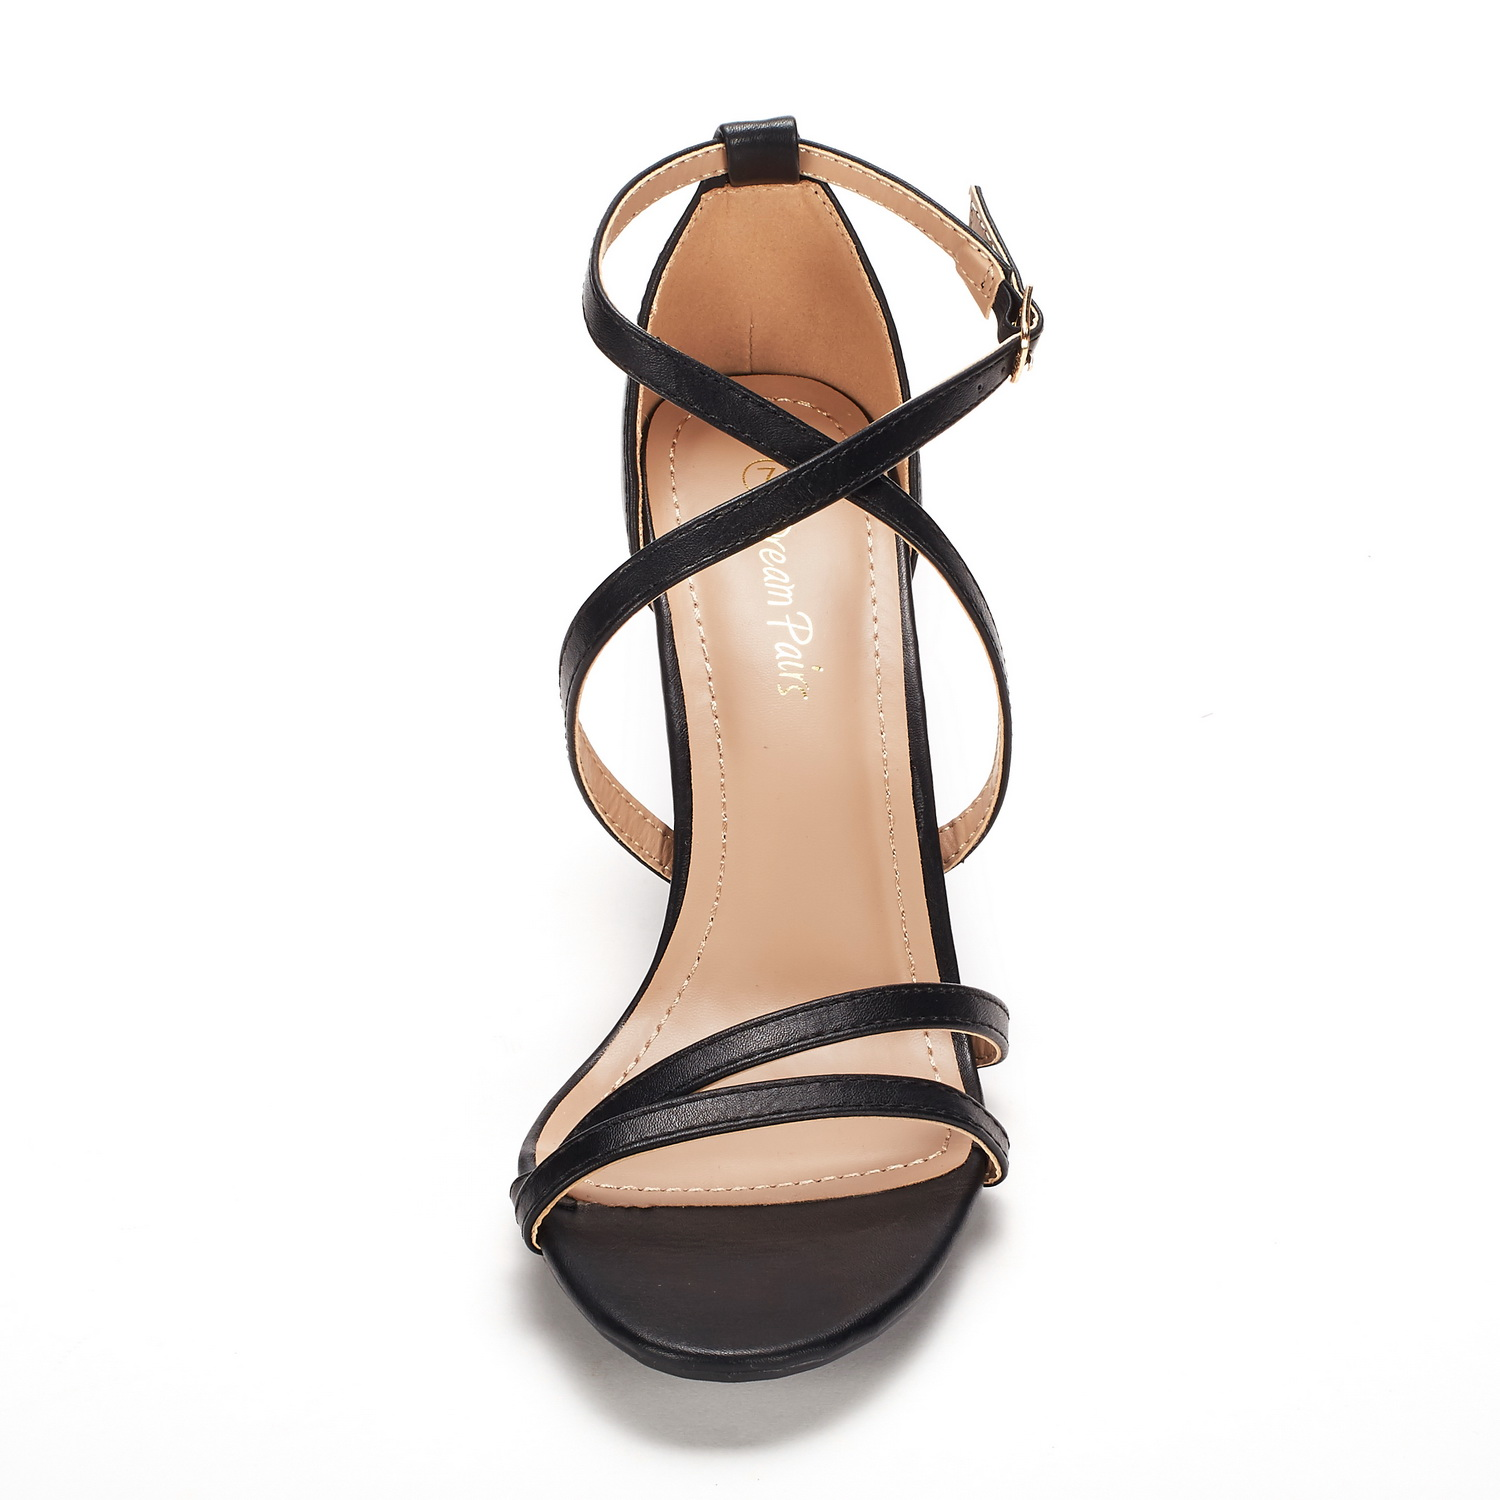 DREAM-PAIRS-Women-039-s-Ankle-Strap-High-Heel-Sandals-Dress-Shoes-Wedding-Party thumbnail 11